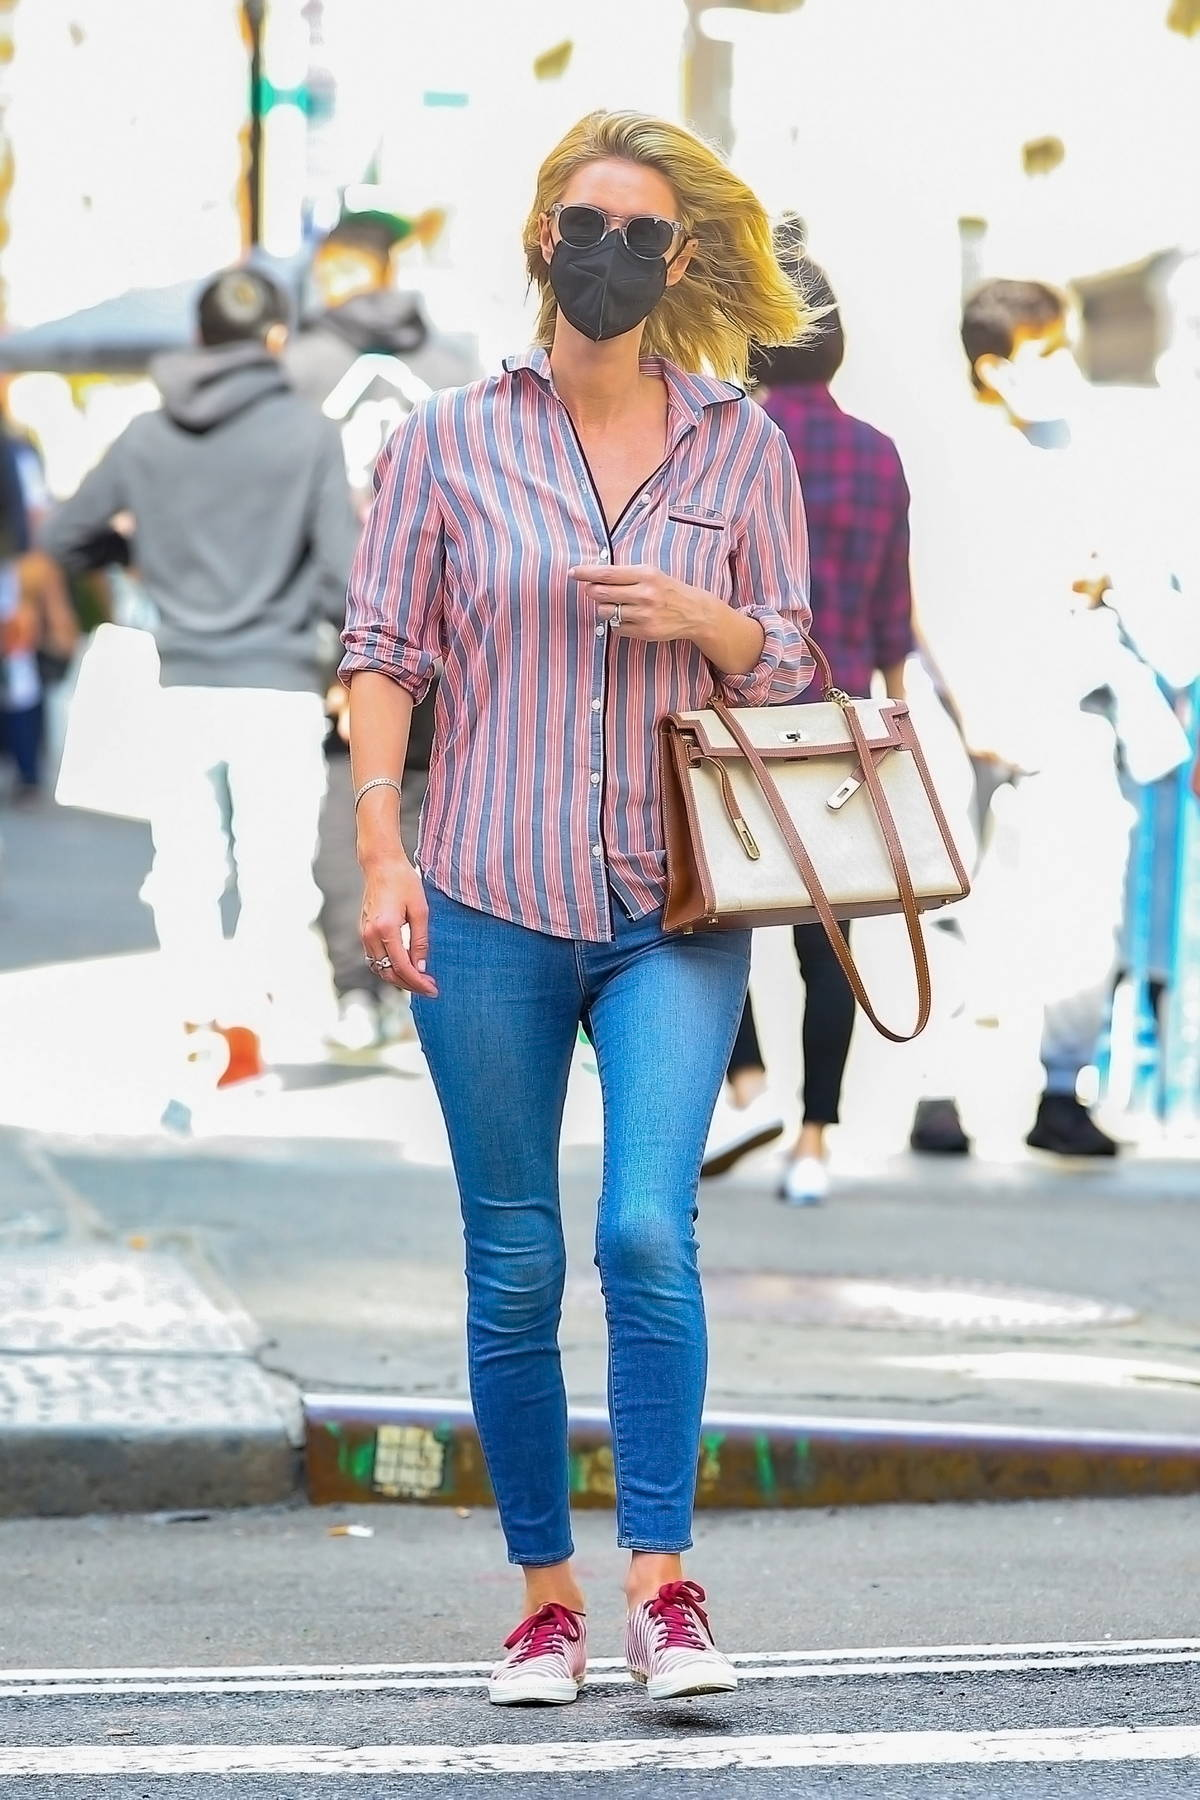 Nicky Hilton wears a striped shirt and matching sneakers with skinny jeans while out running errands in New York City